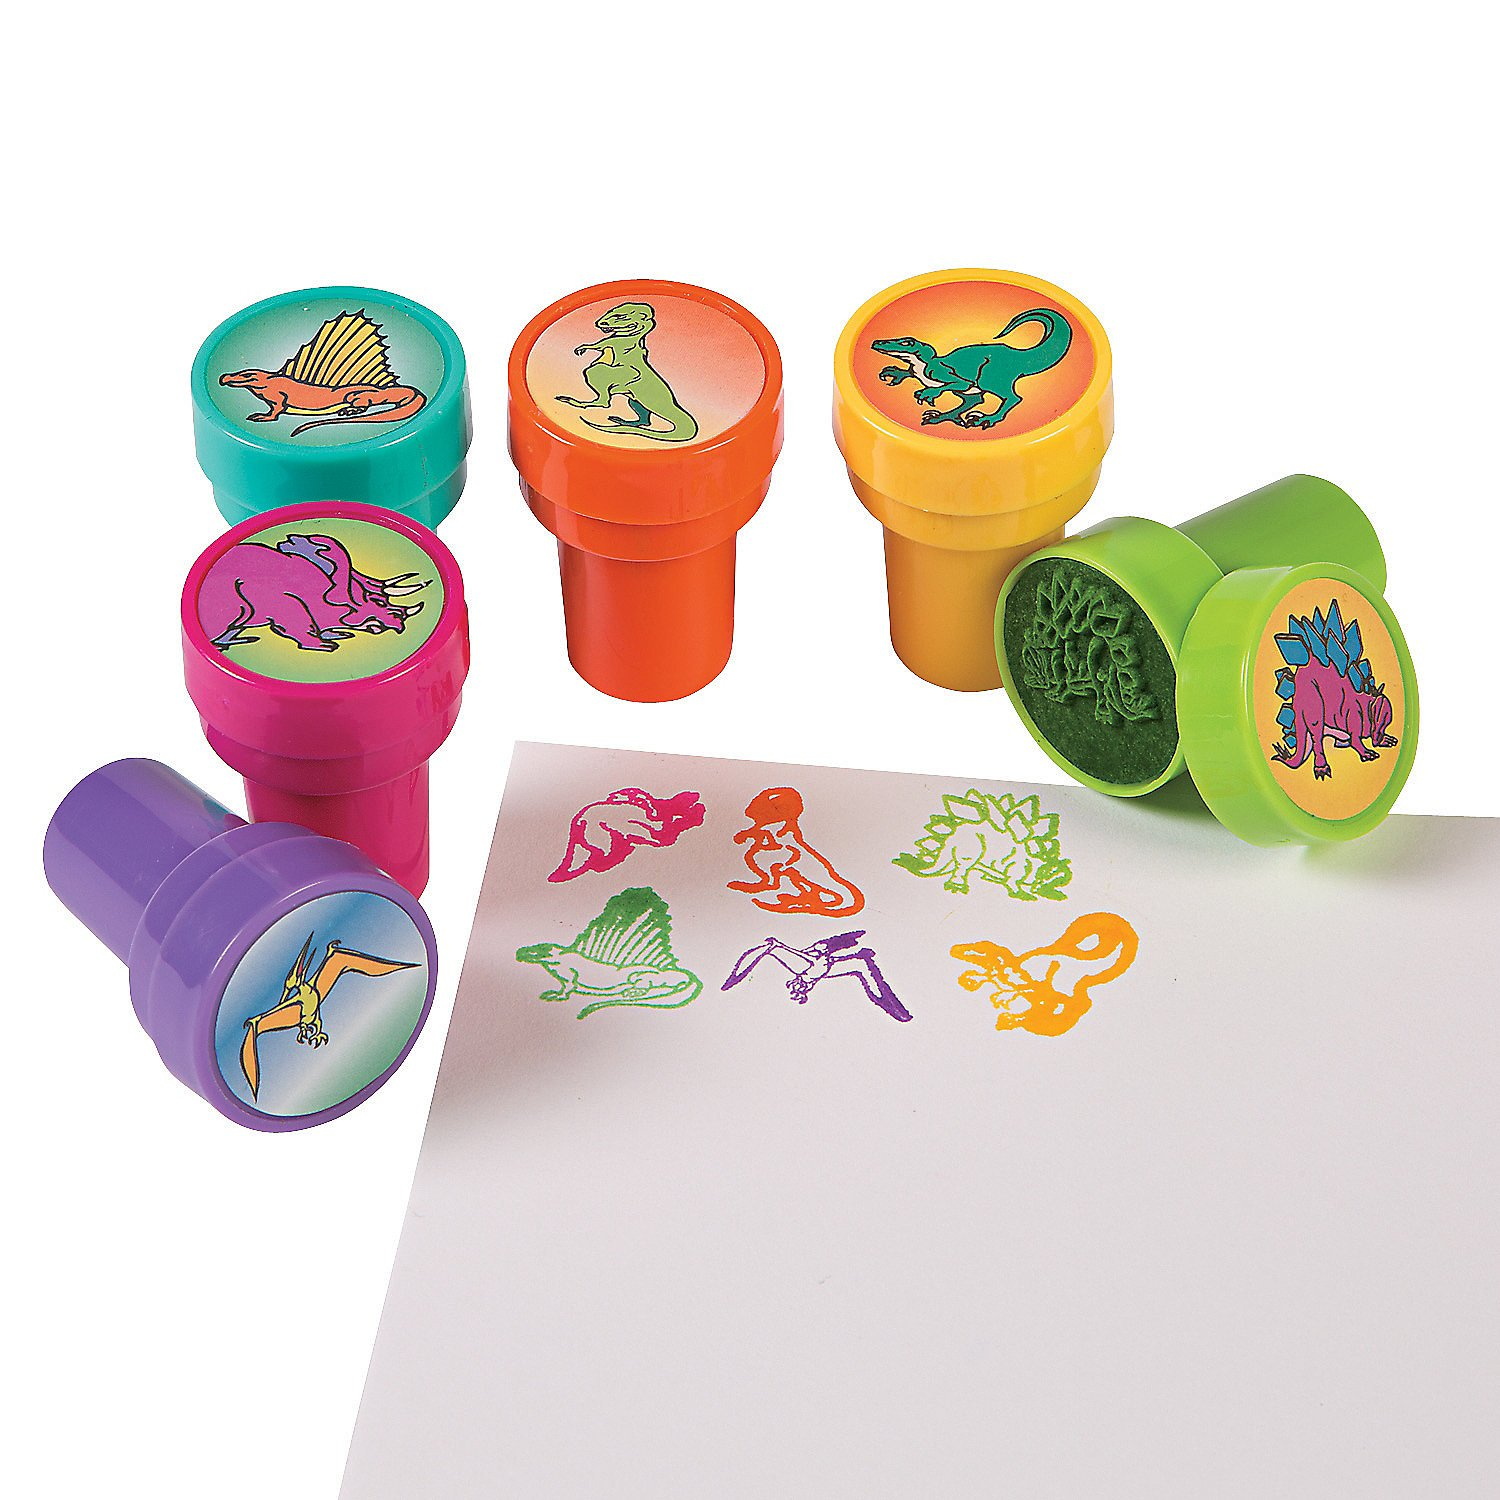 William & Douglas Dinosaur Party Bundle | Supplies Favors and Giveaways for Children's Dinosaur Birthday Party | Dinosaur Stickers, Cellophane Bags, Rings & Stampers by William & Douglas (Image #5)